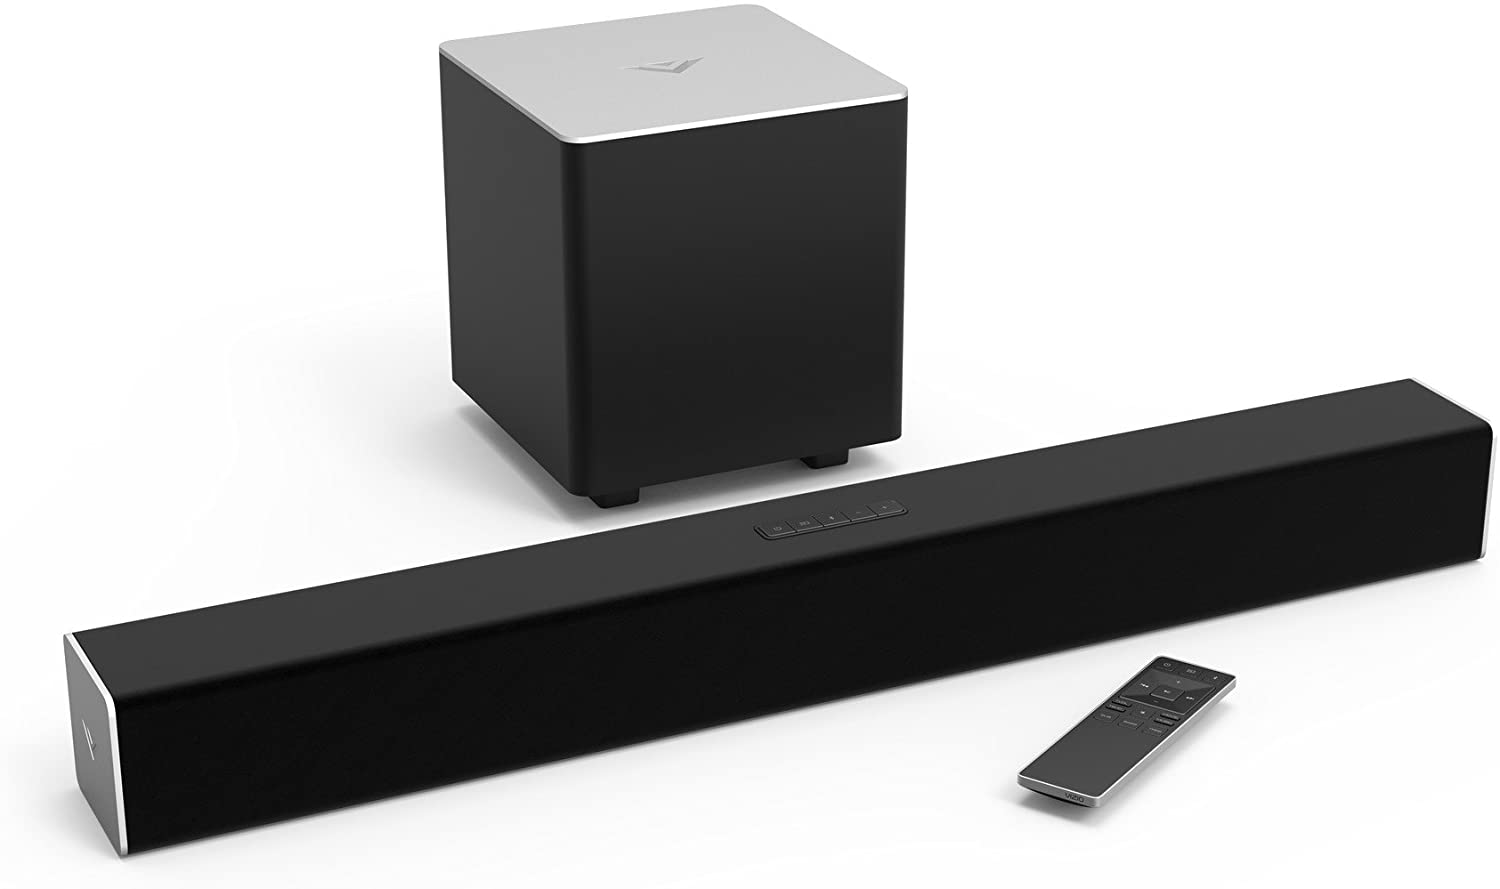 VIZIO 2.1 SB2821-D6  Soundbar & Wireless Subwoofer